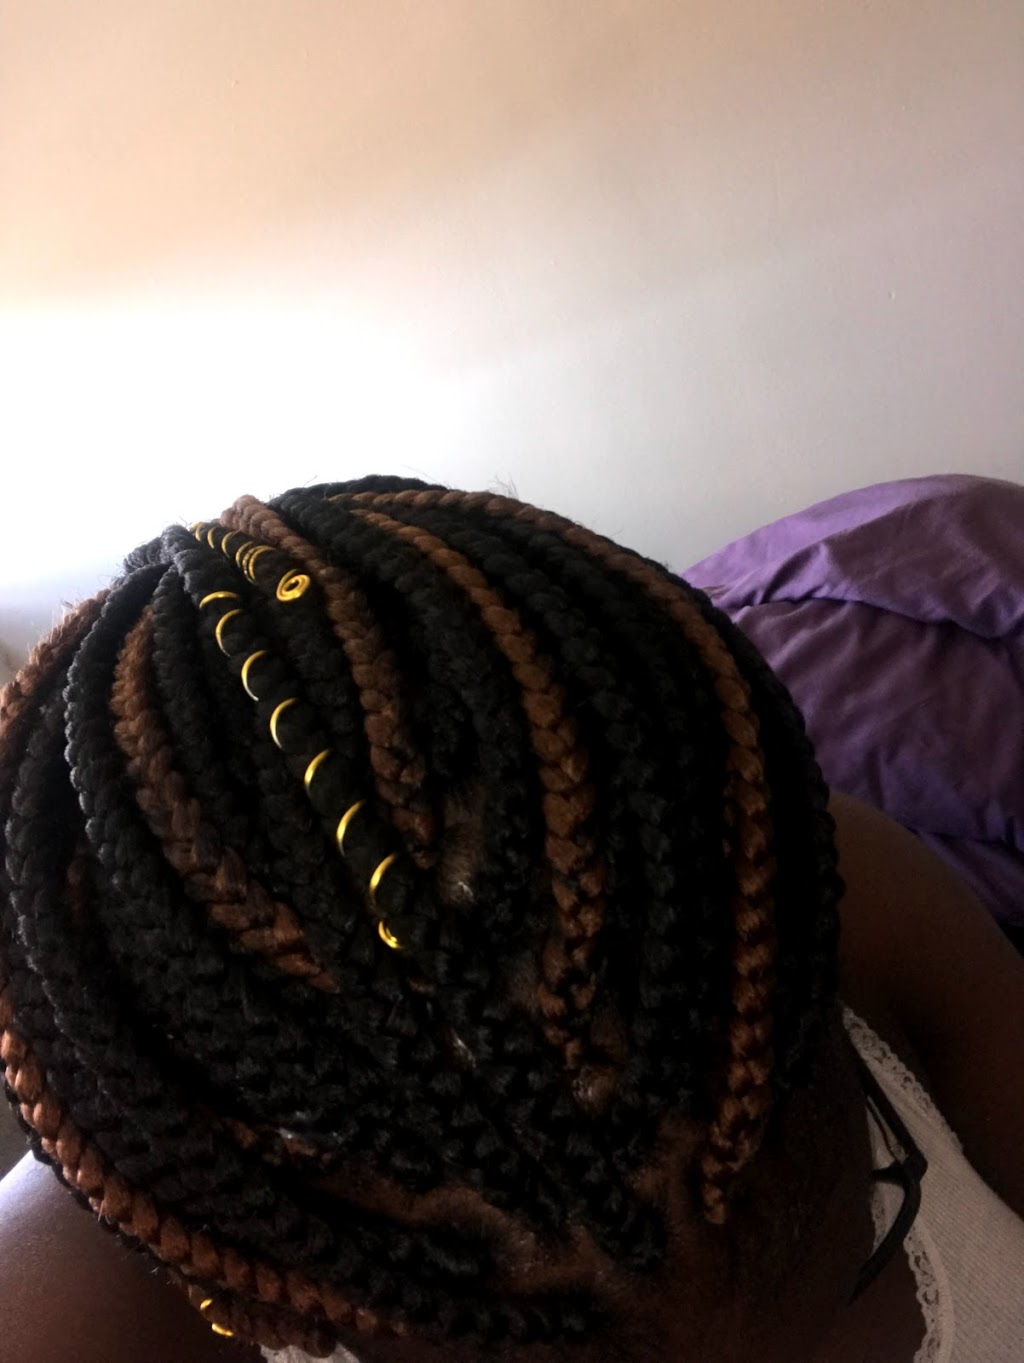 African Hair Braiding By Awa - hair care    Photo 2 of 3   Address: 242 E 35th St, Chicago, IL 60616, USA   Phone: (773) 966-5157